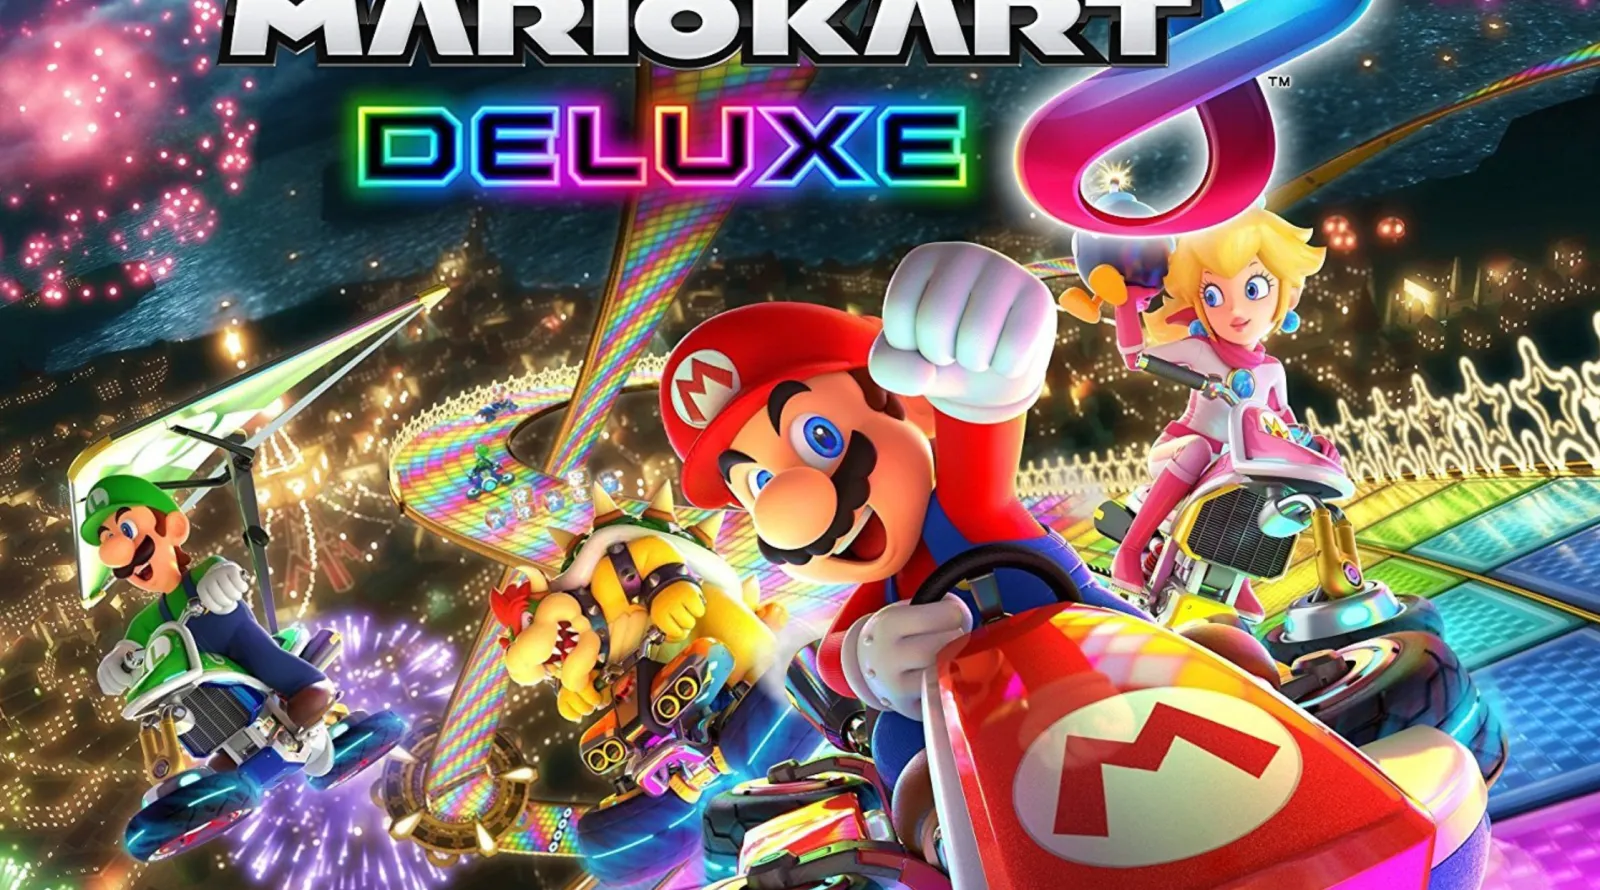 Mario appears in a red cart alongside other characters under the title Mario Kart